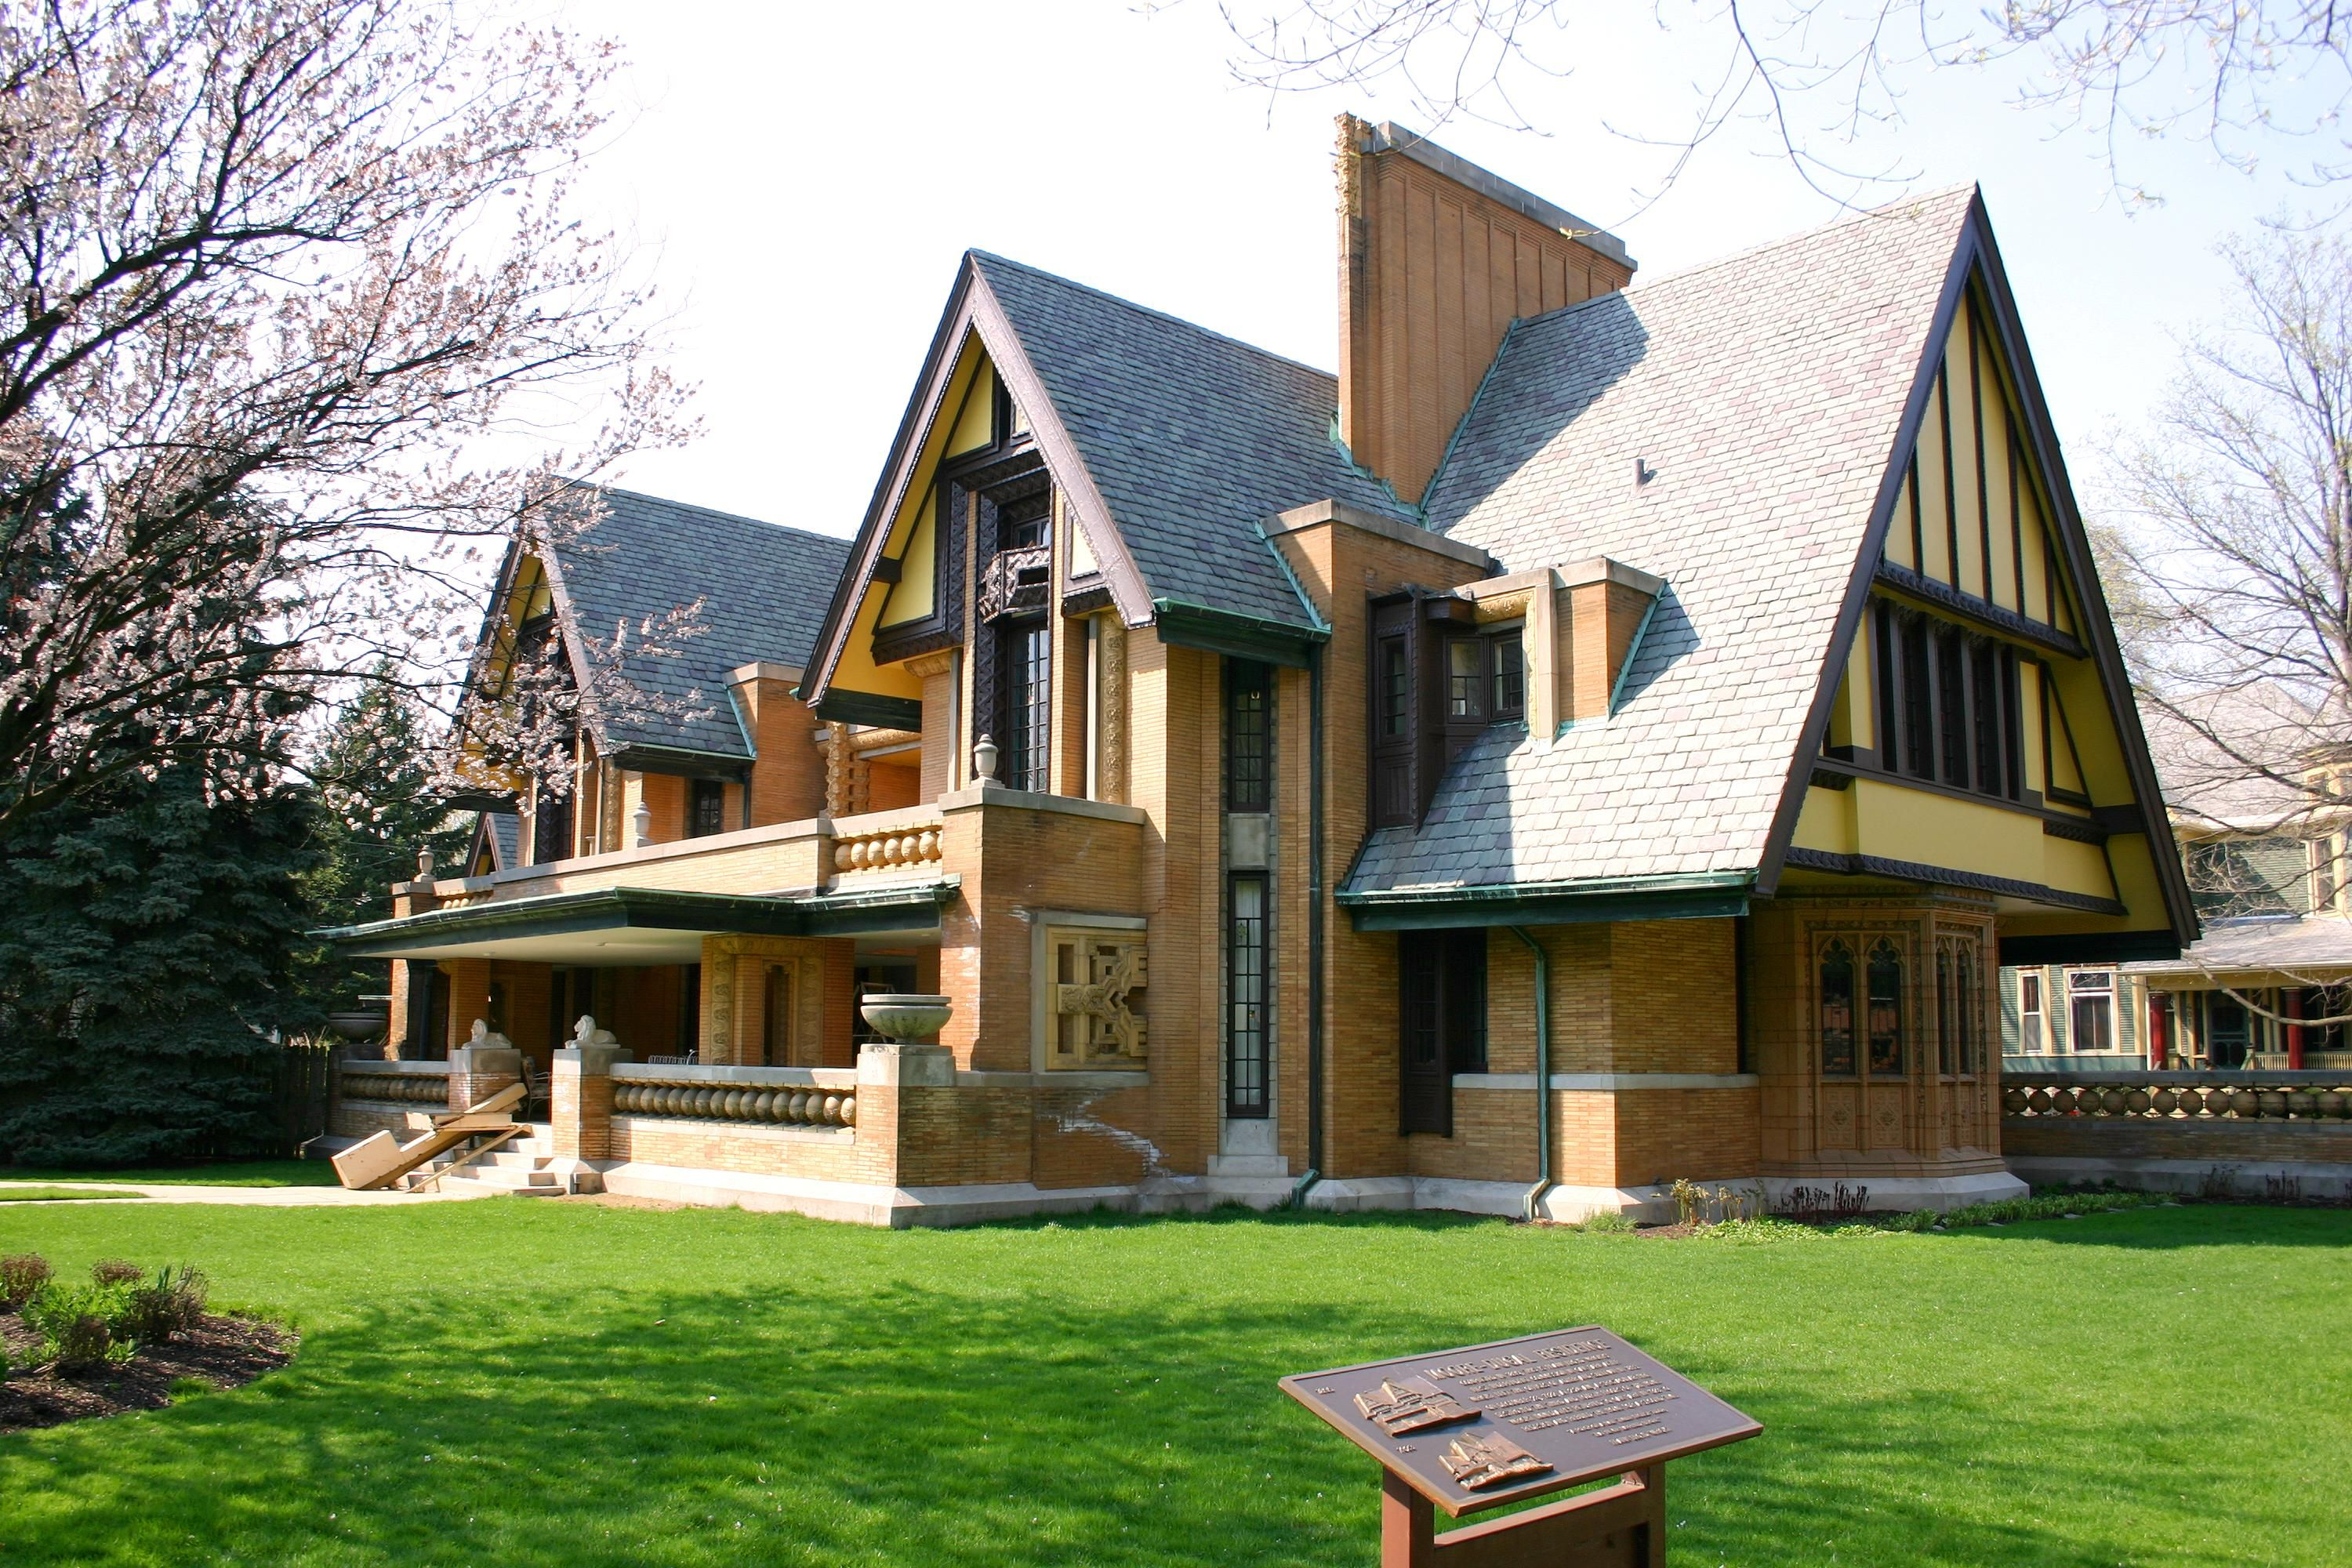 Frank Lloyd Wright Prairie Houses arthur b heurtley house (frank lloyd wright 1902) oak park